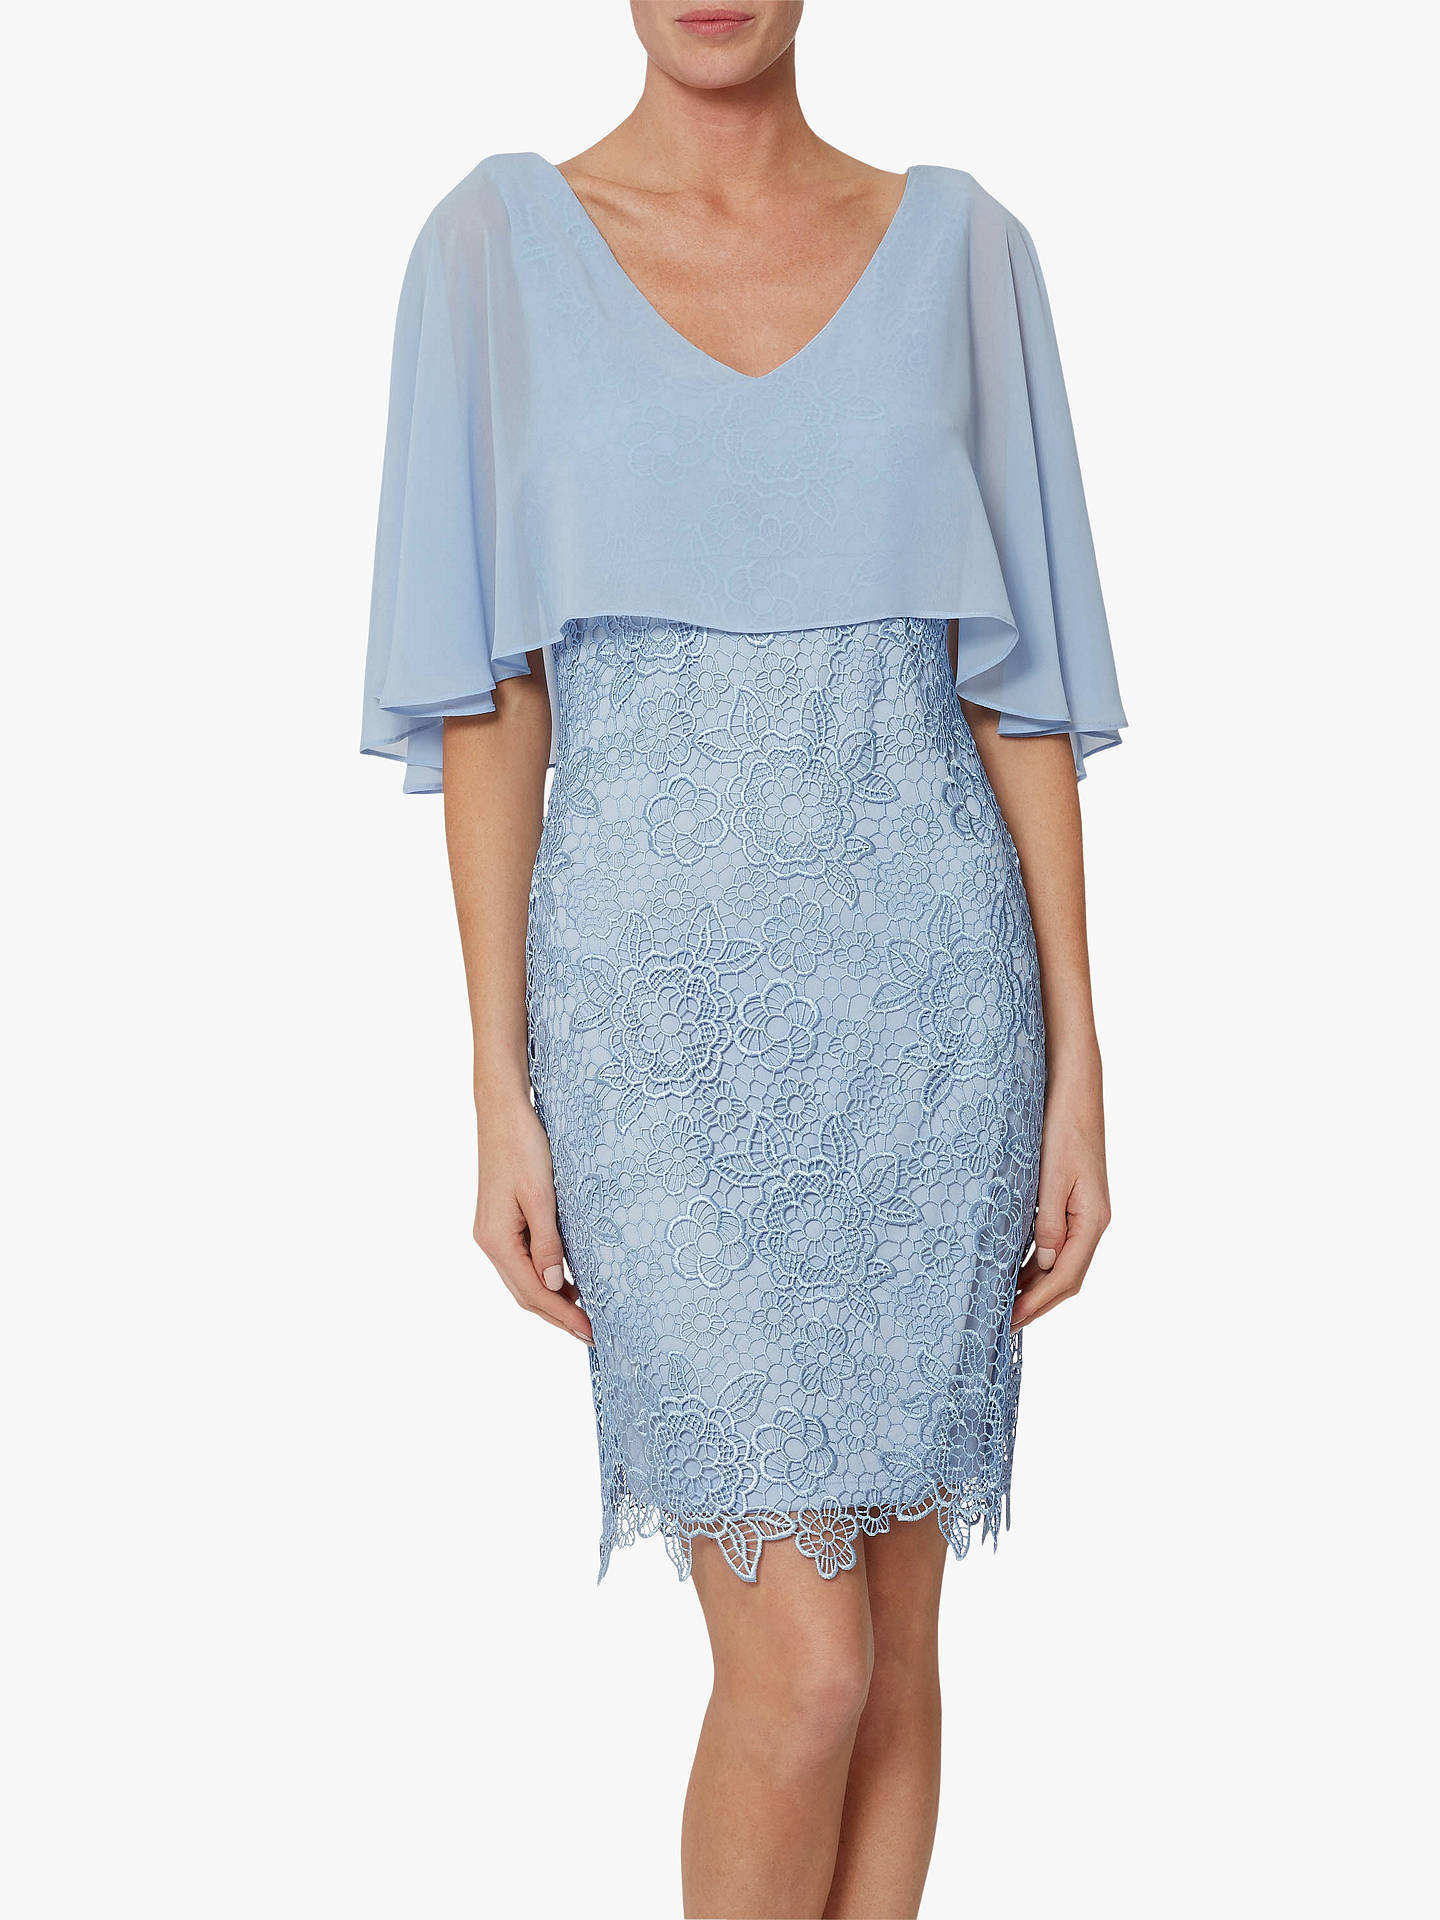 1d7e5b6e2 Buy Gina Bacconi Jonina Lace Dress, Nordic Blue, 22 Online at johnlewis.com  ...